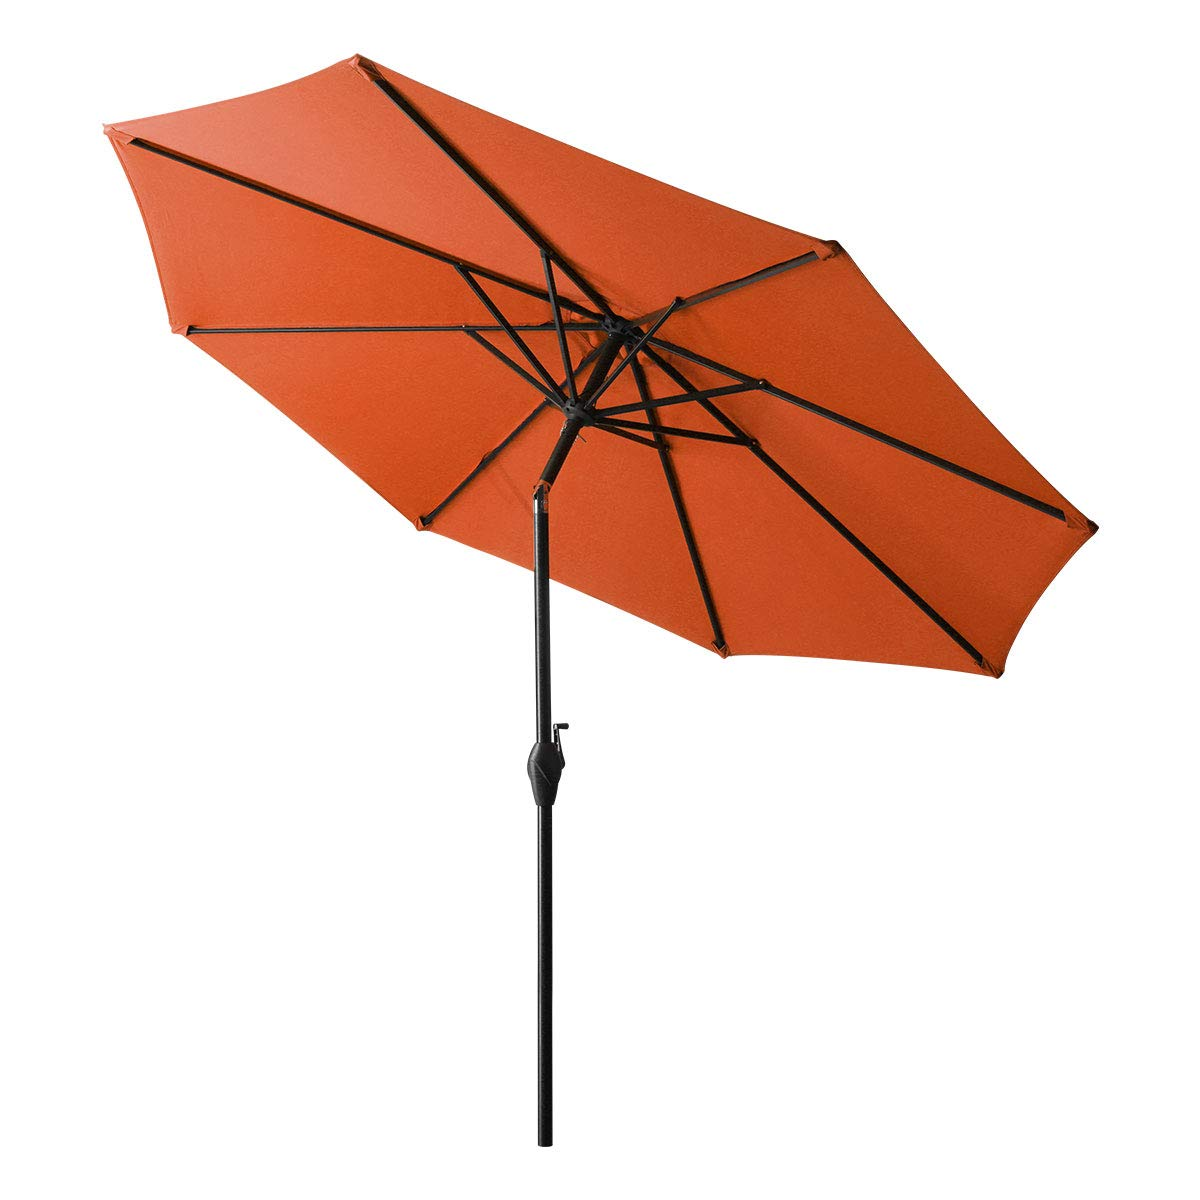 MURBONE 9FT Patio Umbrella Outdoor Table Umbrella with 8 Sturdy Ribs, Tilt and Crank Market Umbrellas for Garden, Deck, Backyard and Pool (Orange)